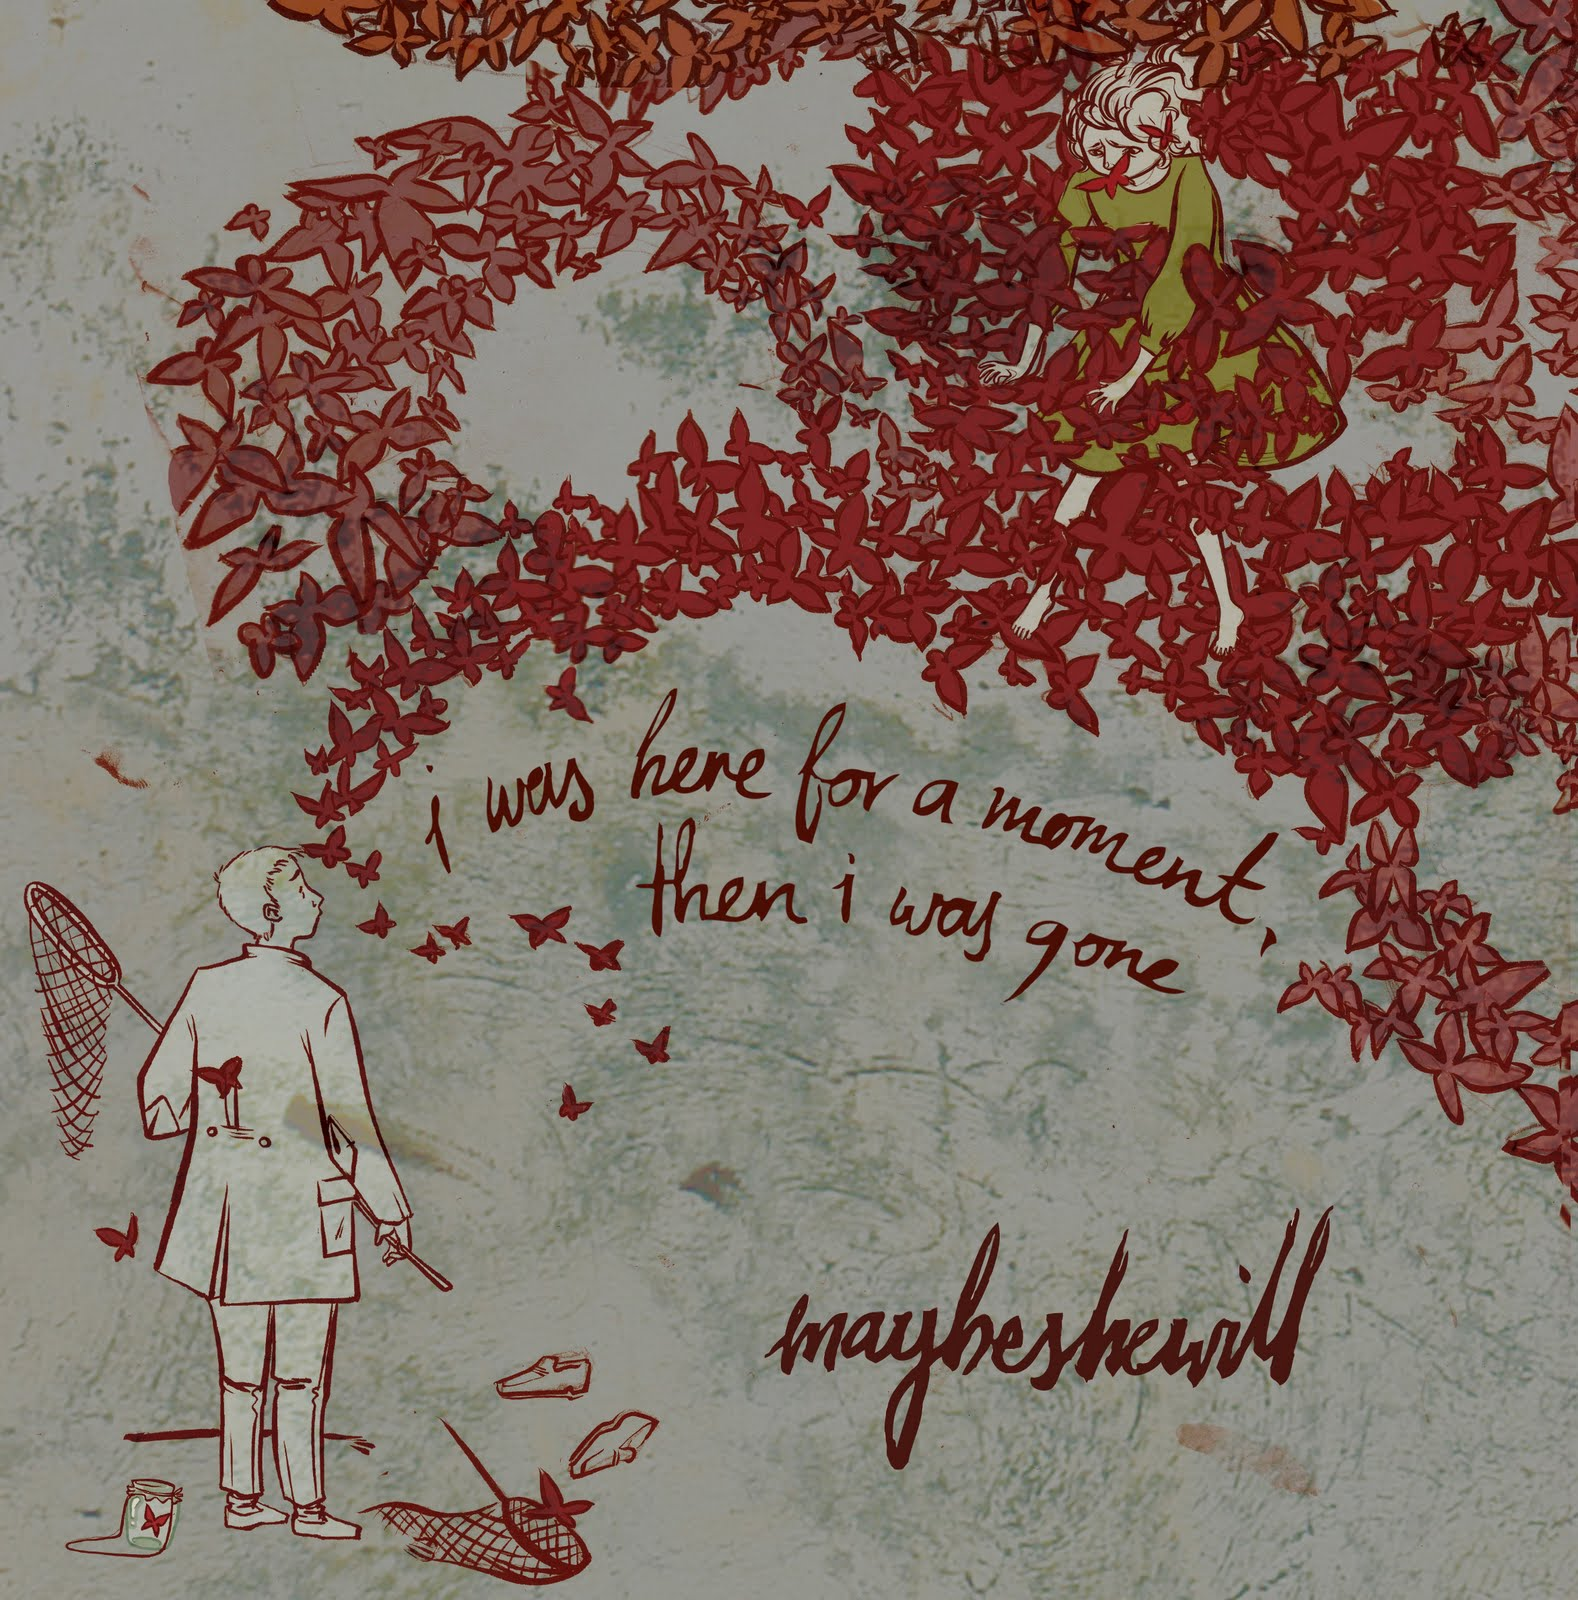 CD Review: I Was Here For A Moment Then I was Gone by Maybeshewill